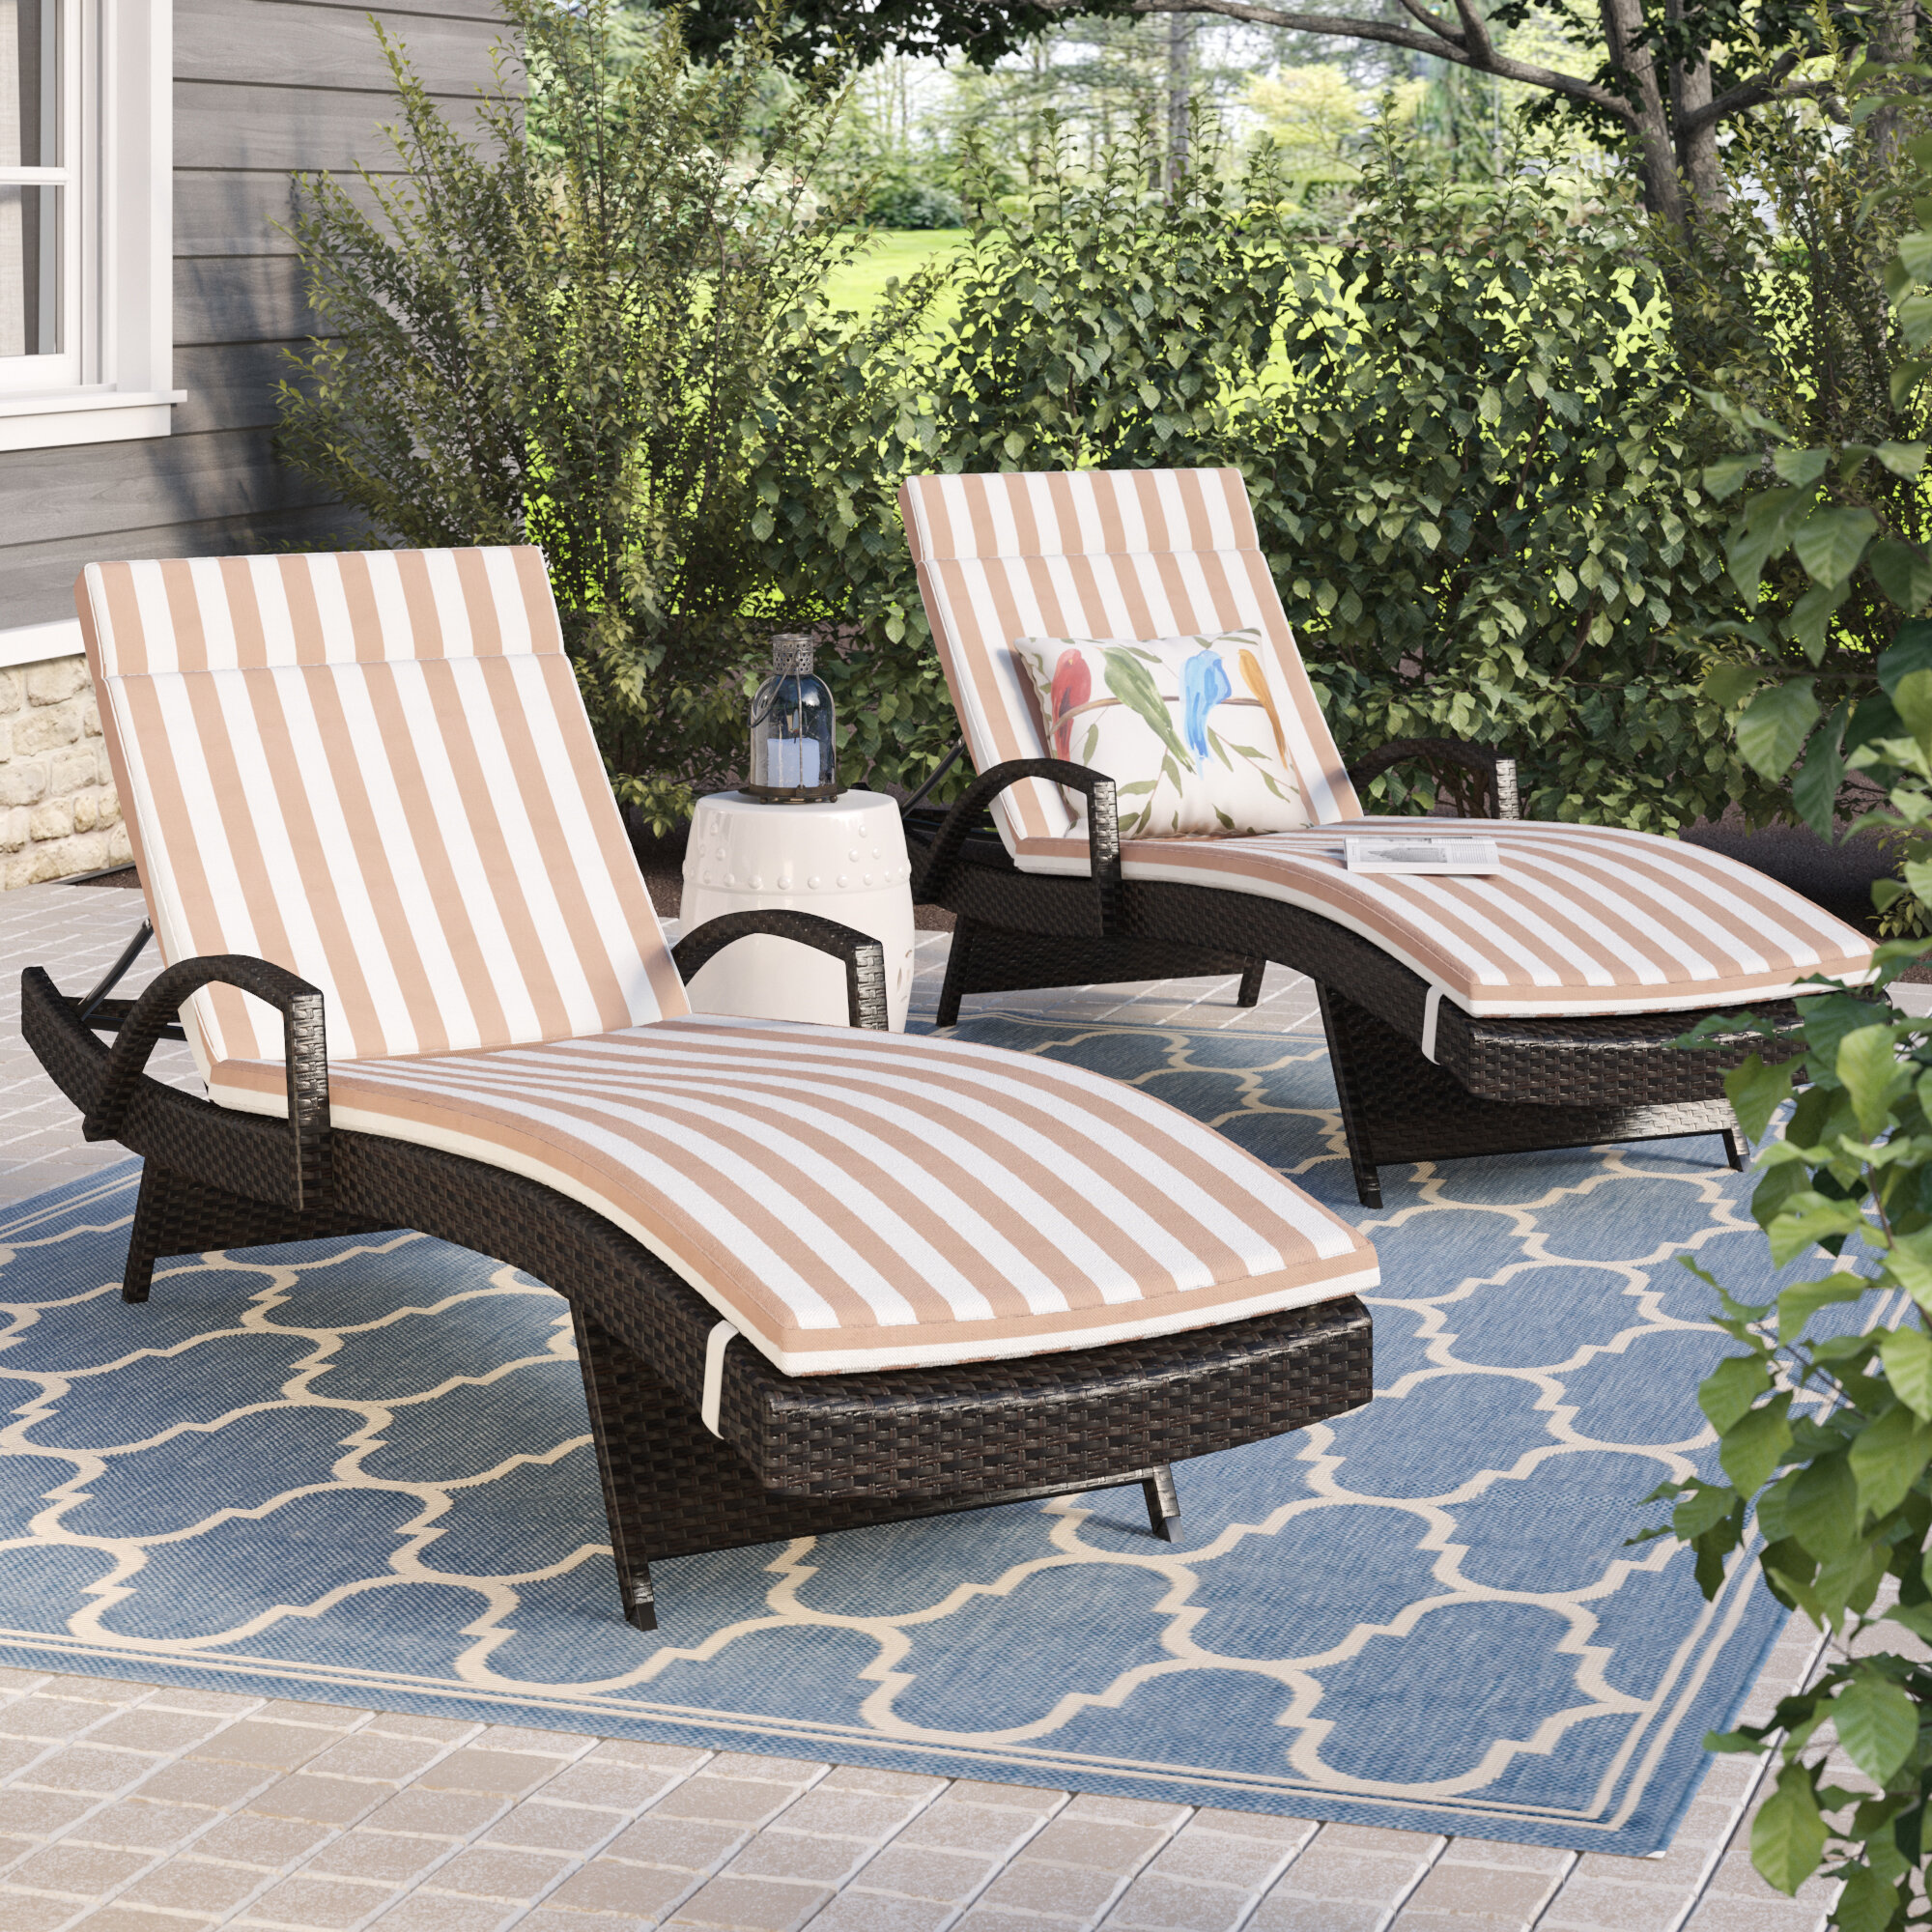 Sol 72 Outdoor Rebello Outdoor Reclining Chaise Lounge With Cushion Reviews Wayfair